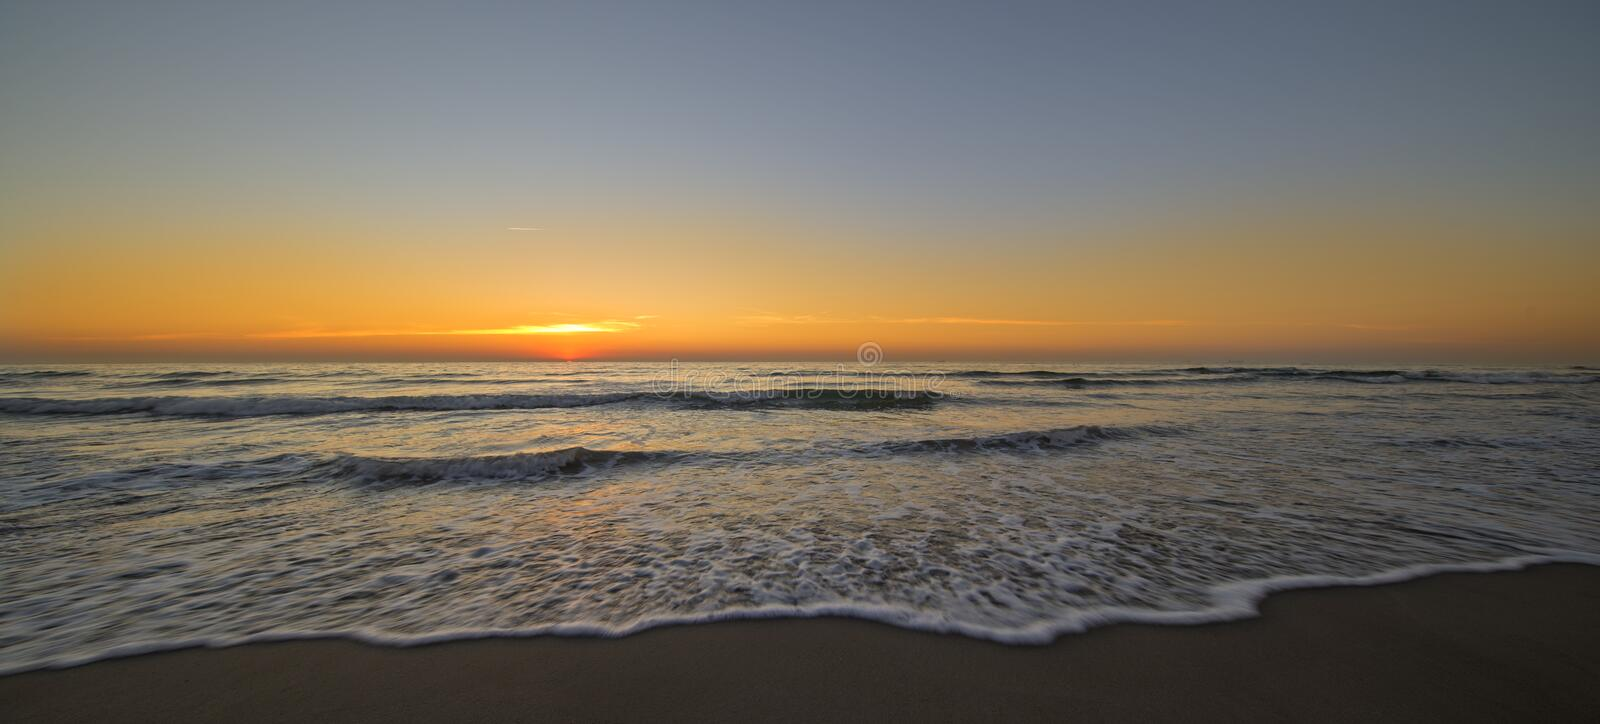 The beach of Barcelona at the beautiful sunrise stock photography